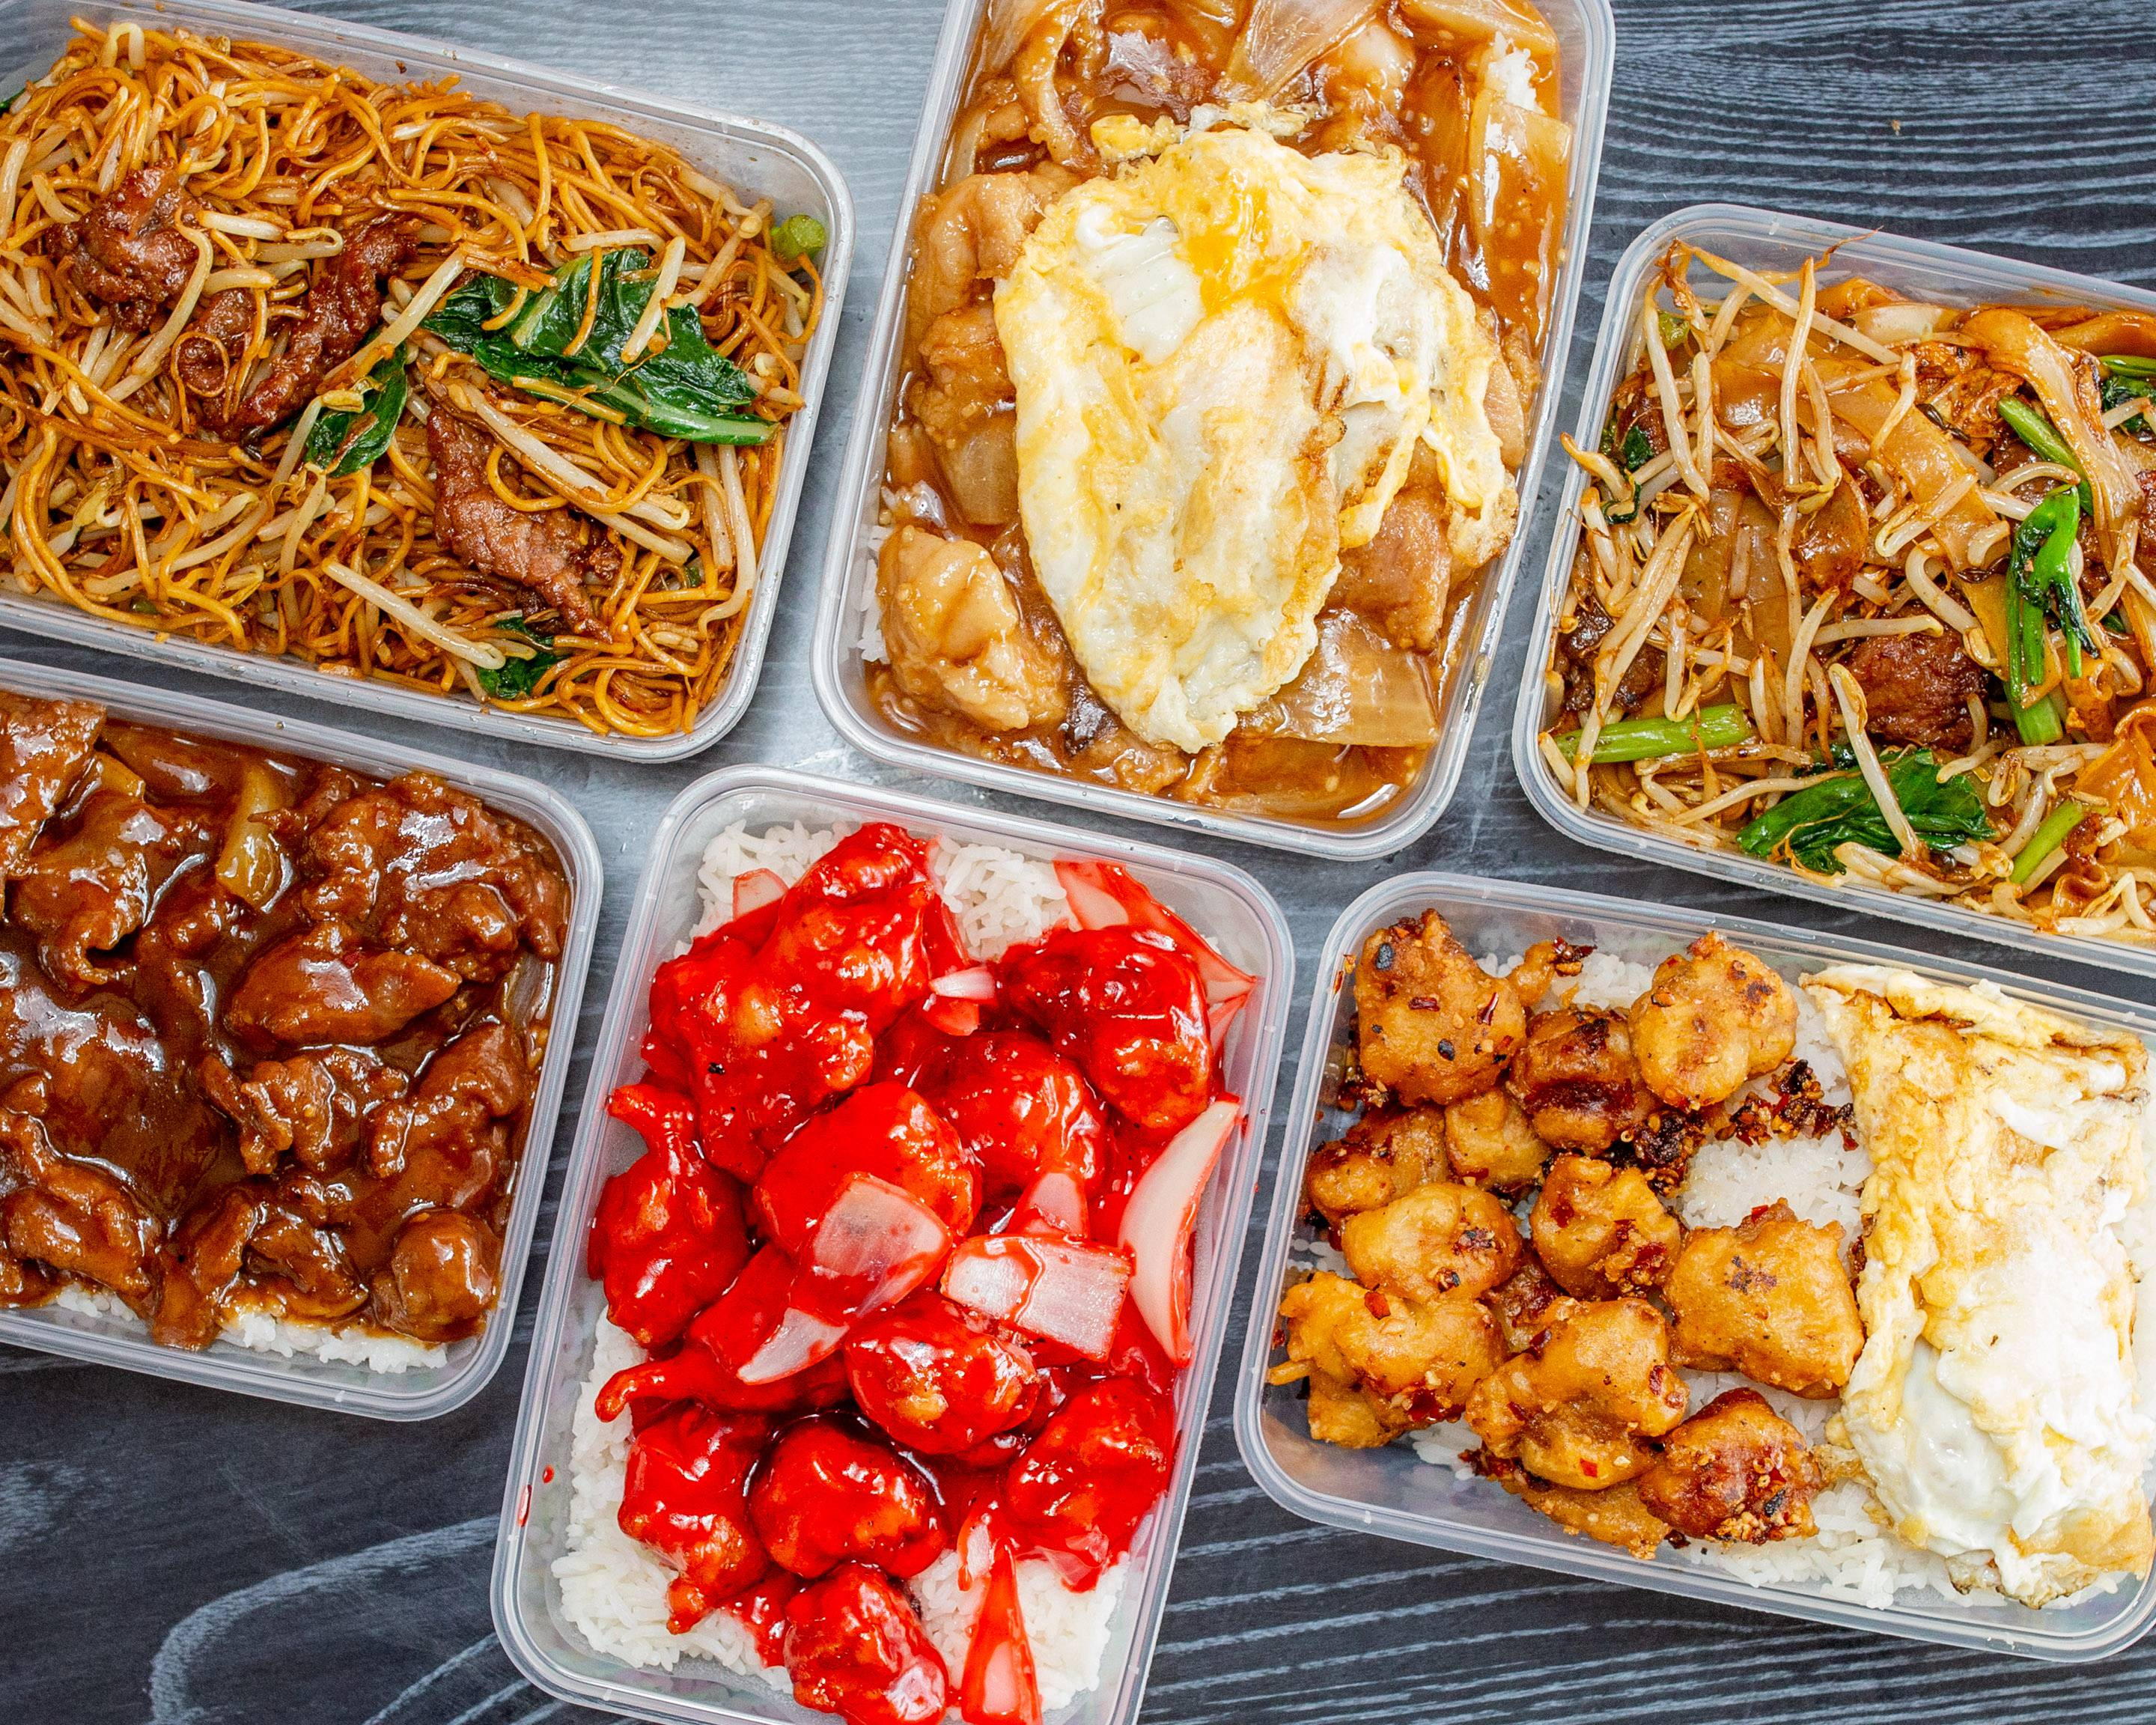 chen chinese kitchen takeaway in sydney  delivery menu